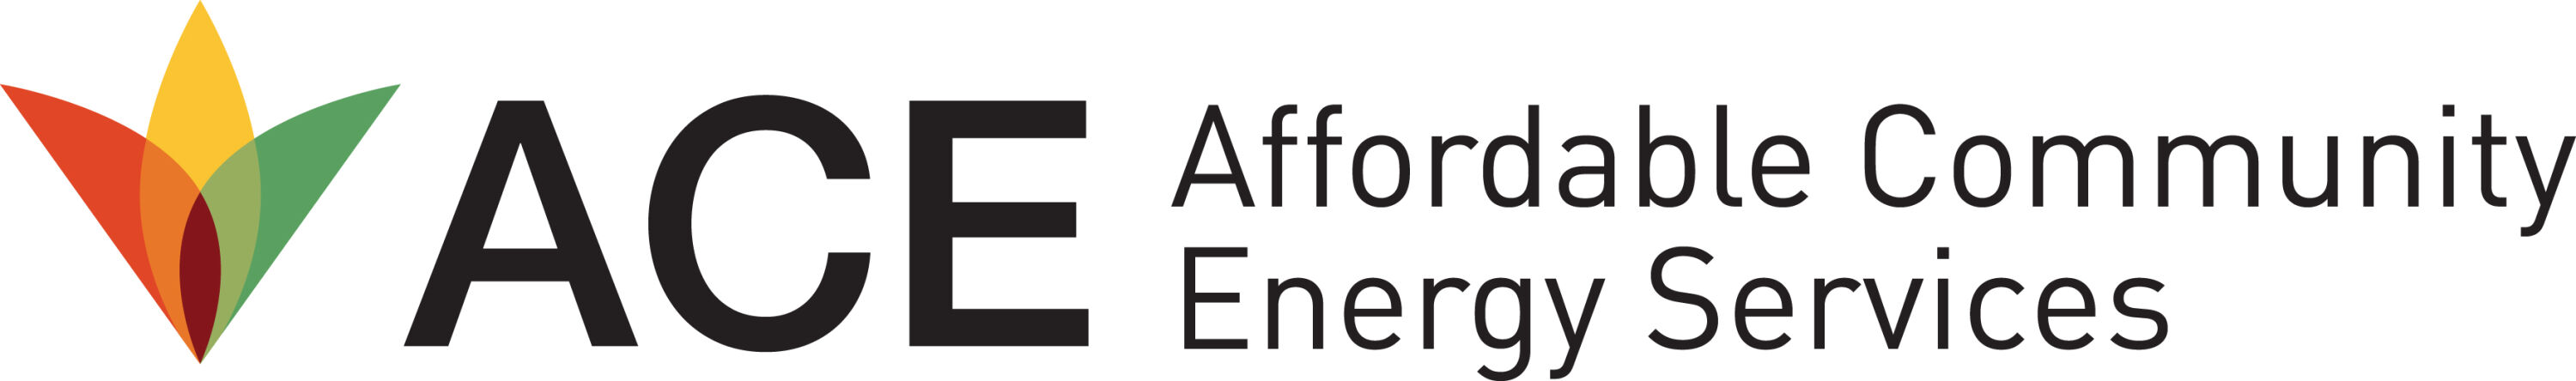 Affordable Community Energy Services